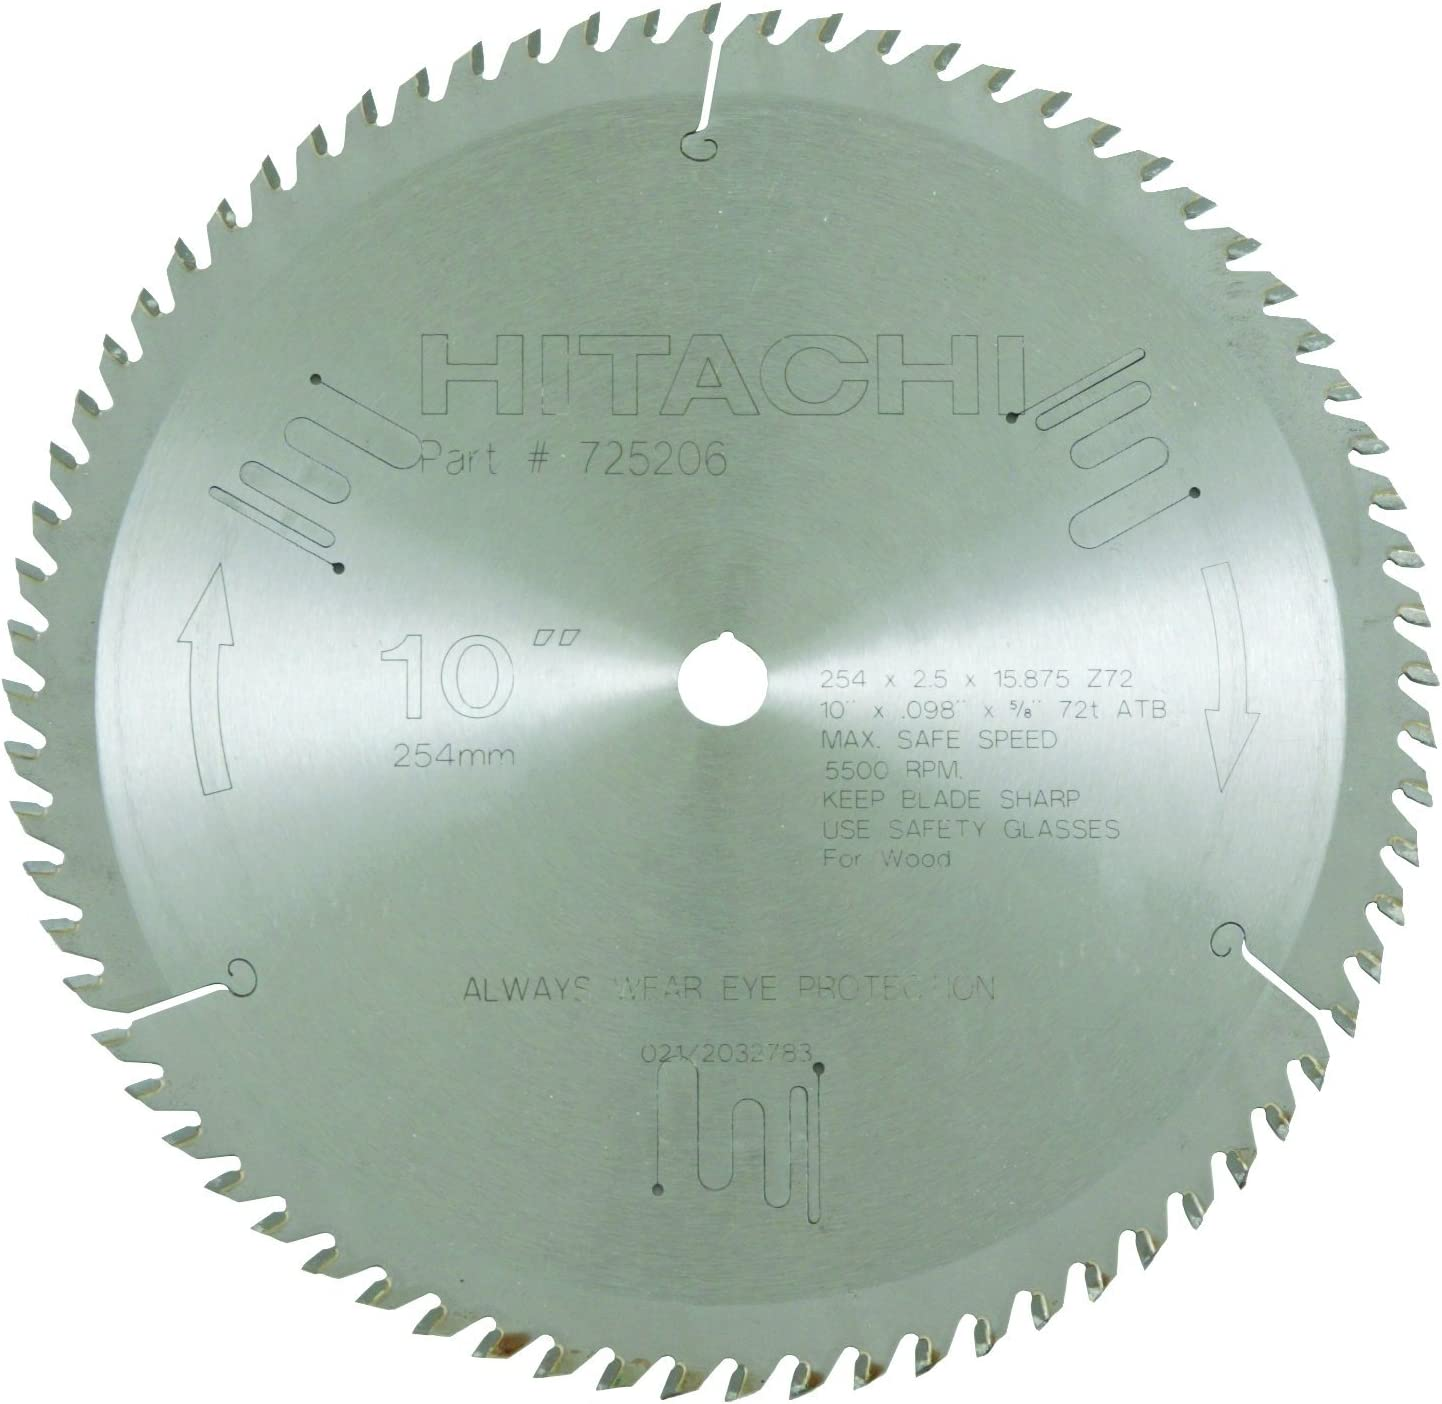 8. Hitachi 725206 10-Inch Miter Saw Blade